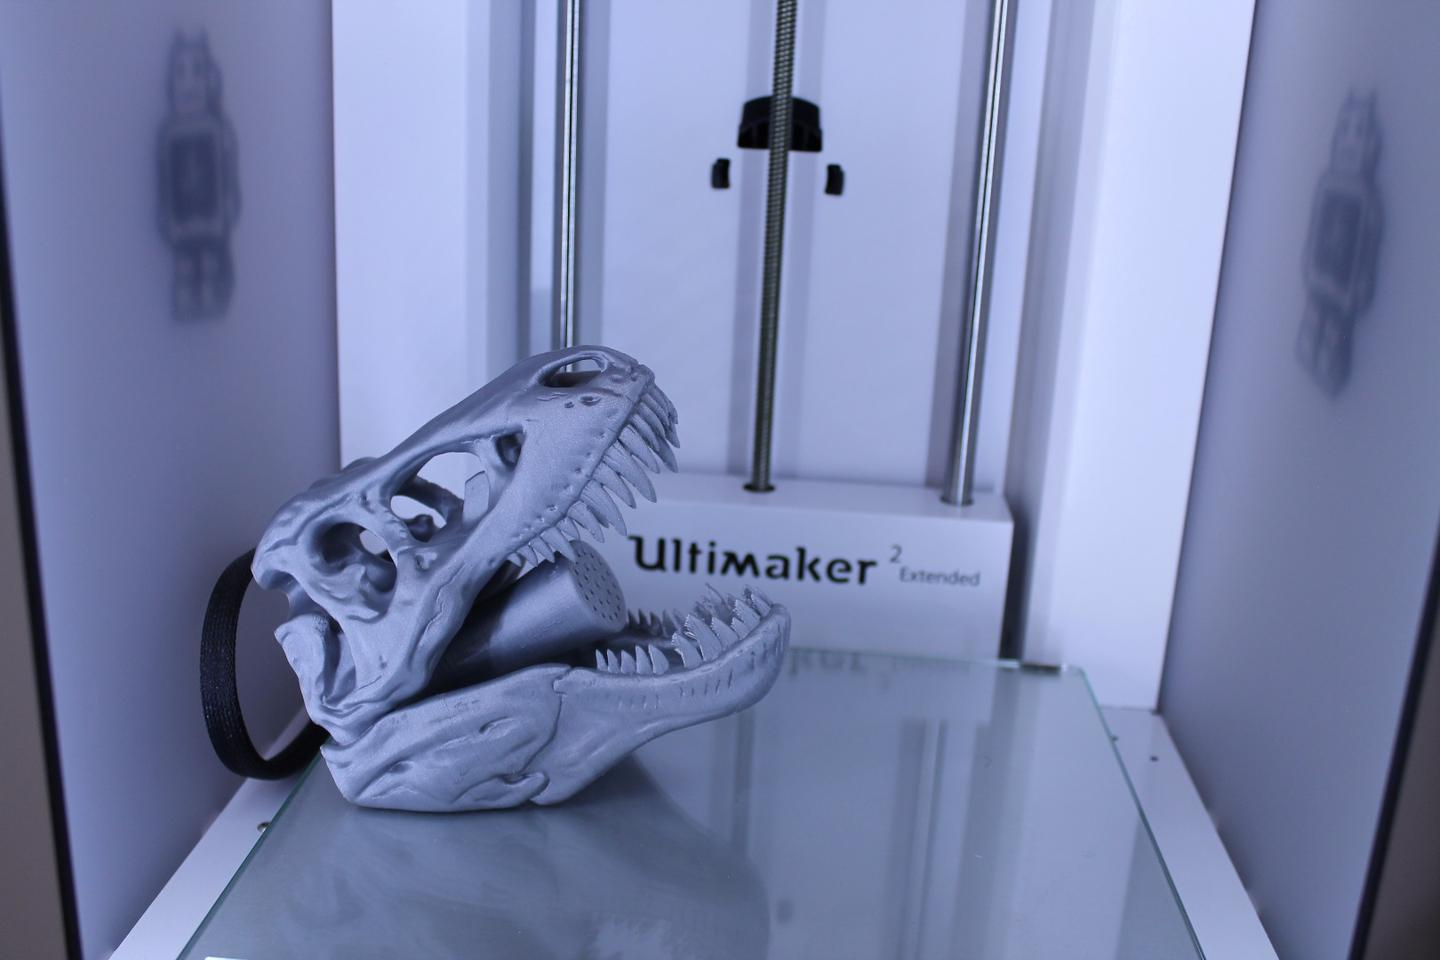 The Ultimaker 2 Extended printed this vicious shower head overnight